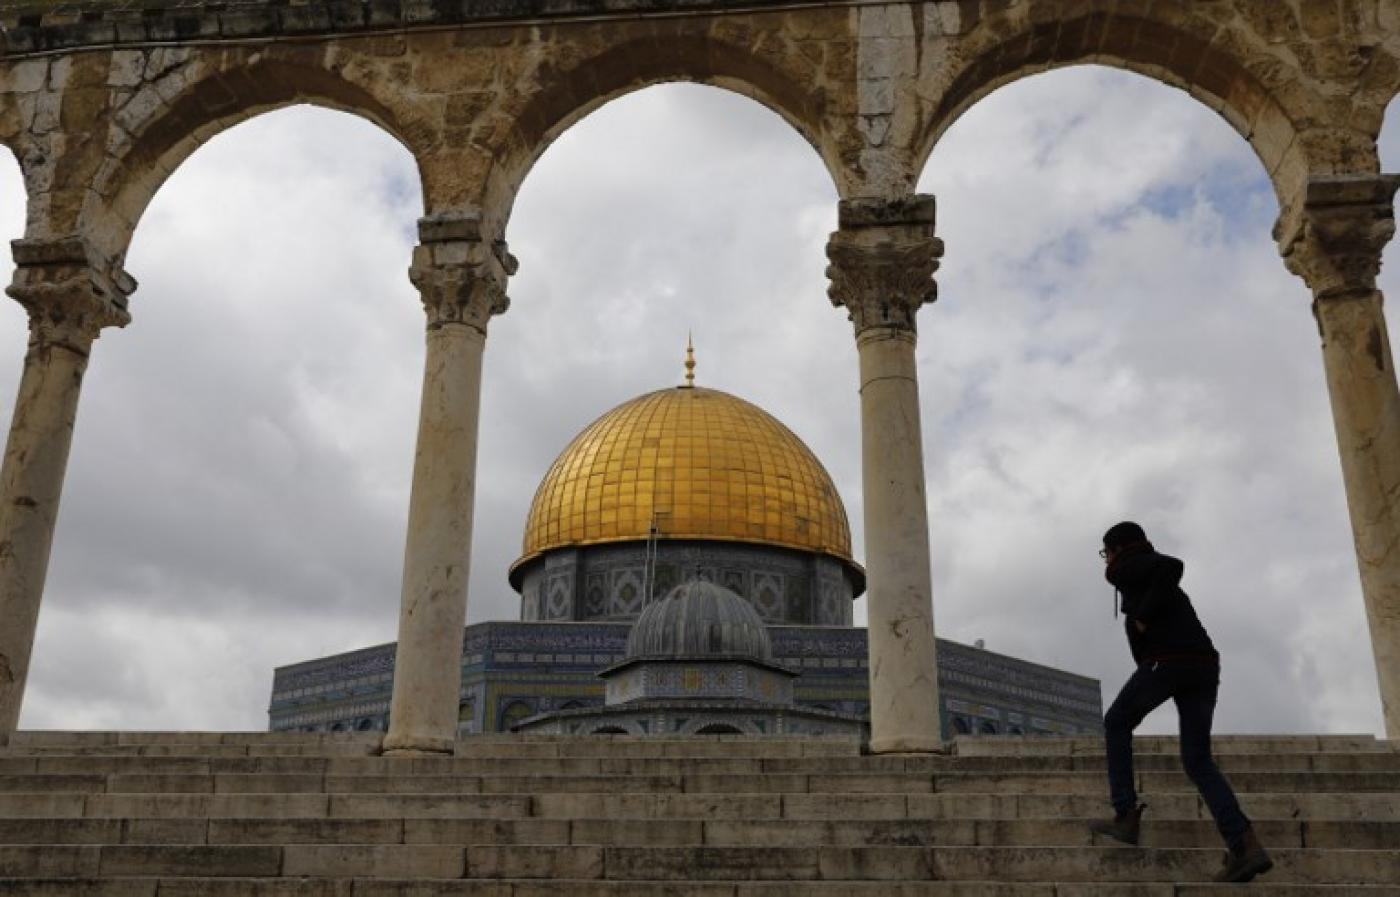 Erdan: 'We will not allow a religious war caused on Temple Mount'